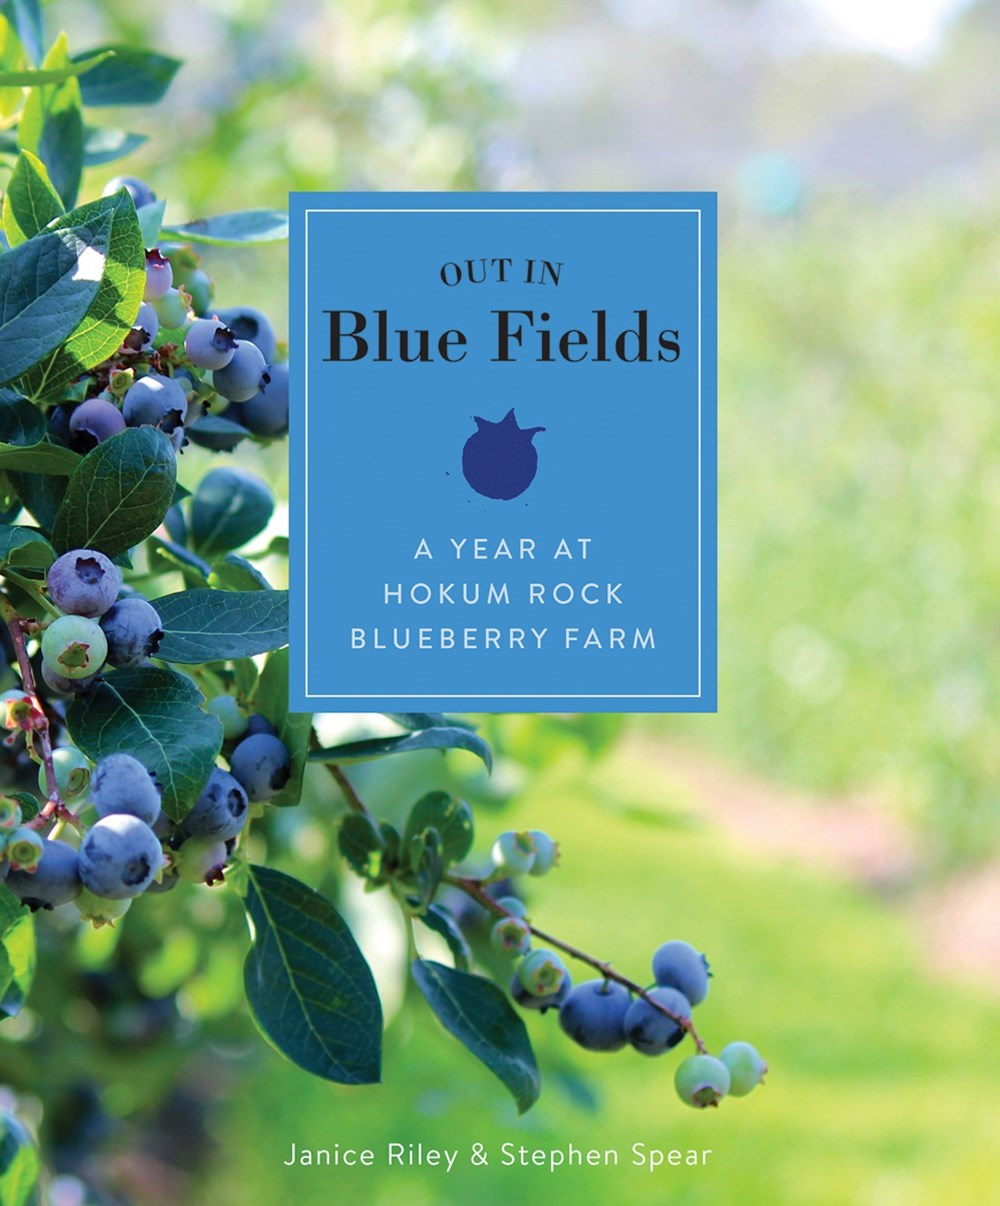 Out in the Blue Fields: A Year at Hokum Rock Bluberry Farm